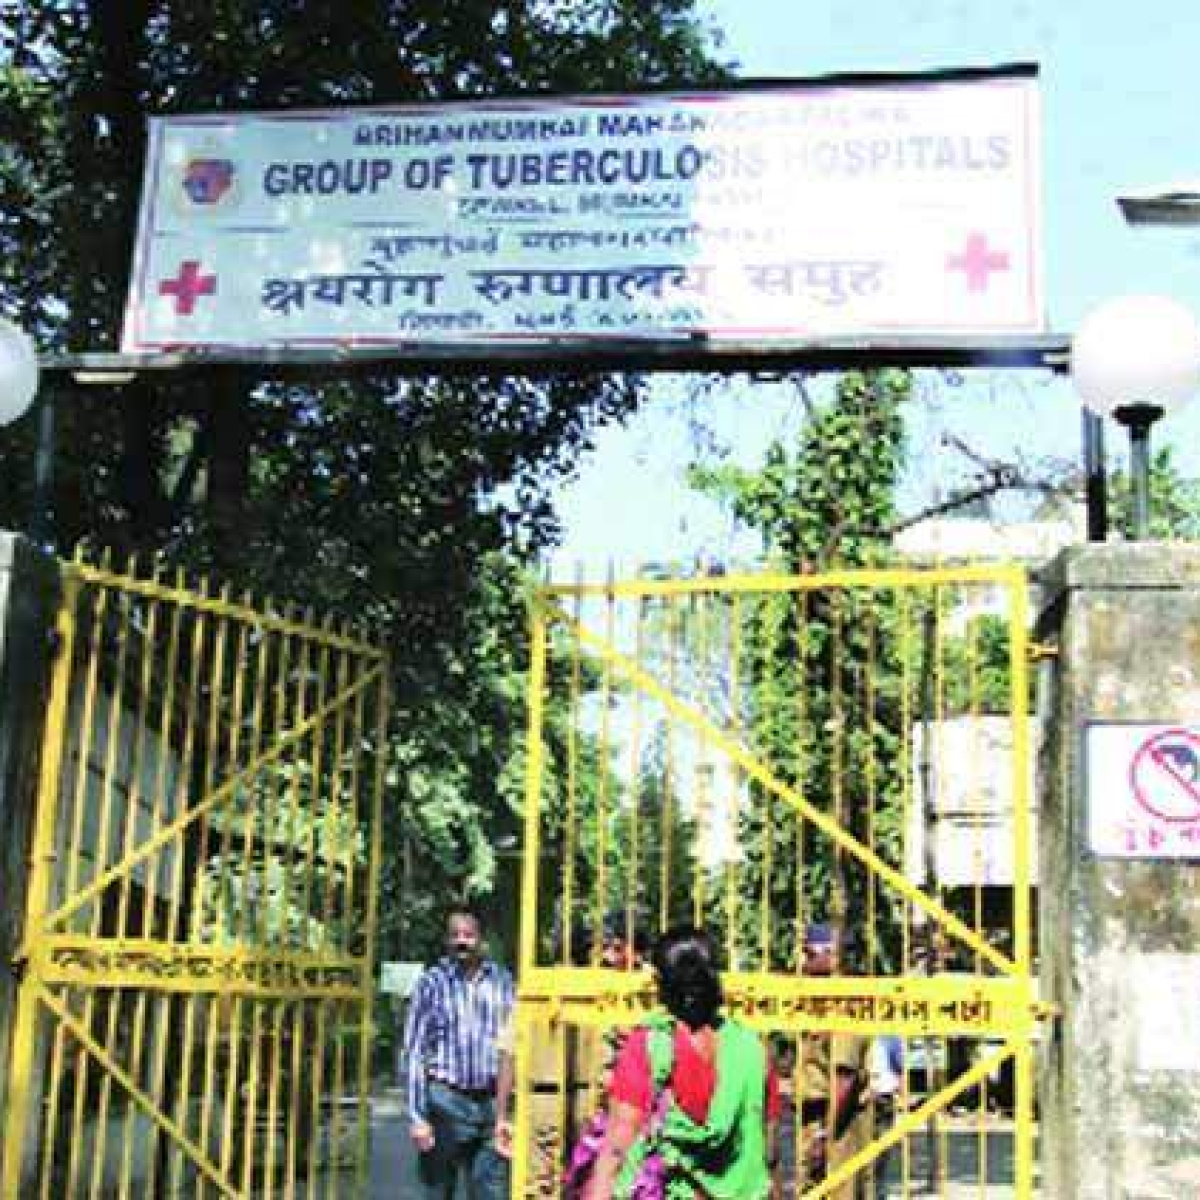 For want of nutritious food, TB hospital staffers become patients themselves